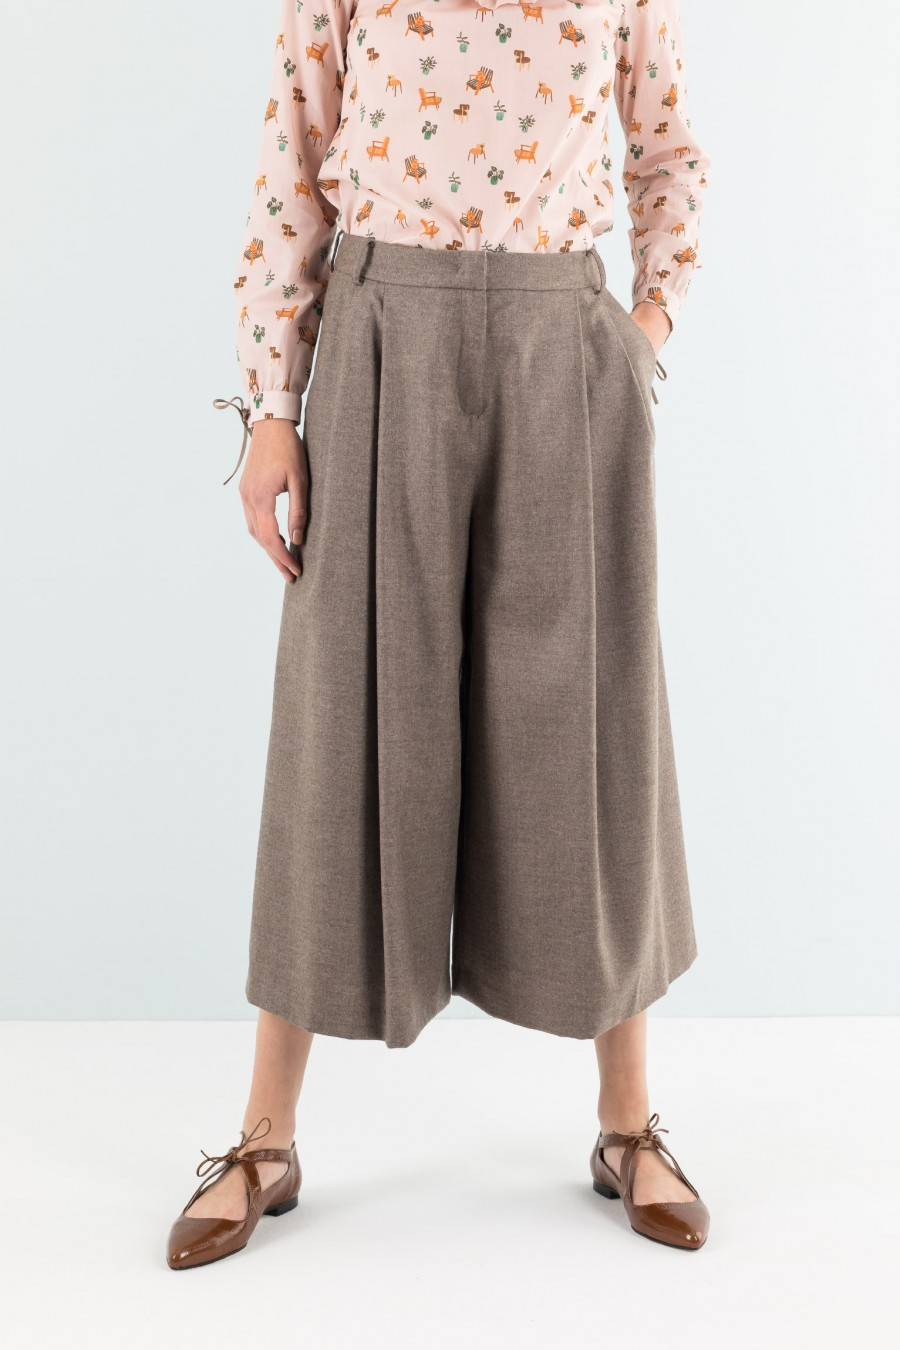 Brown sparkly culottes